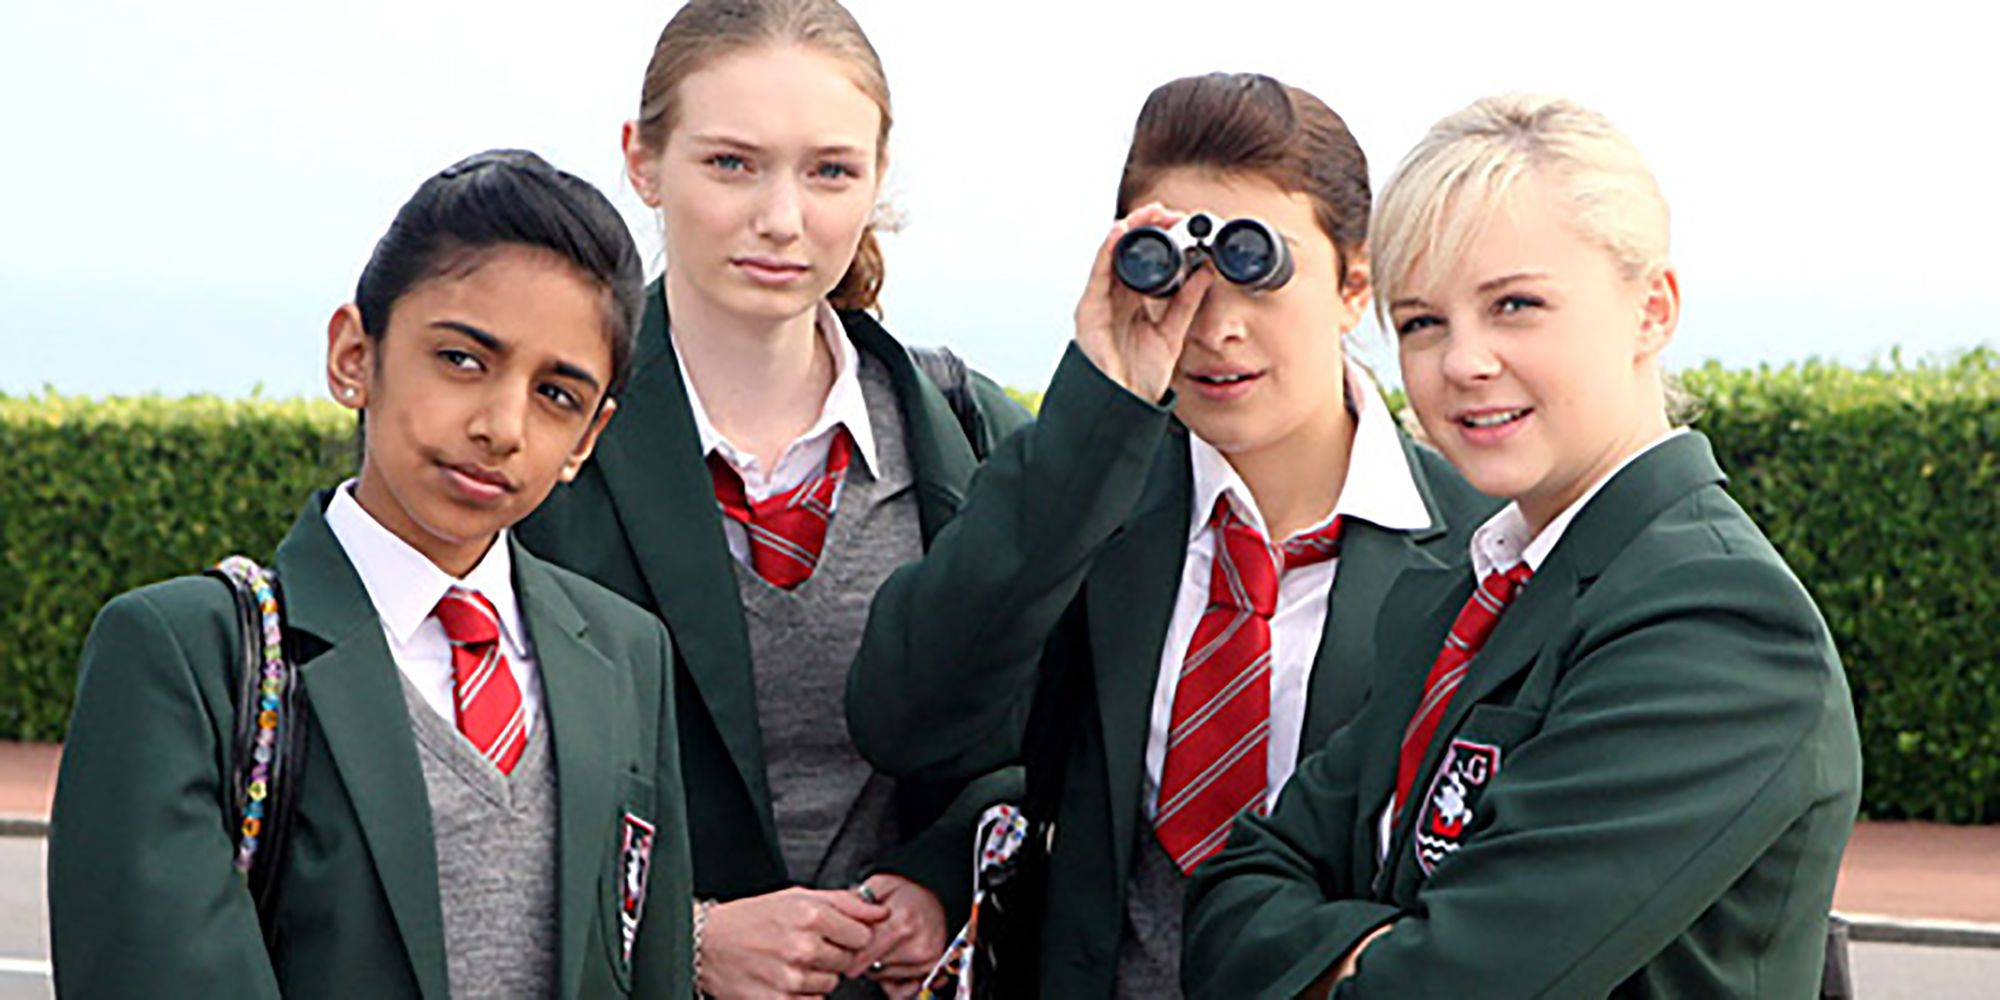 Angus Thongs And Perfect Snogging Cast what are the cast of angus, thongs and perfect snogging